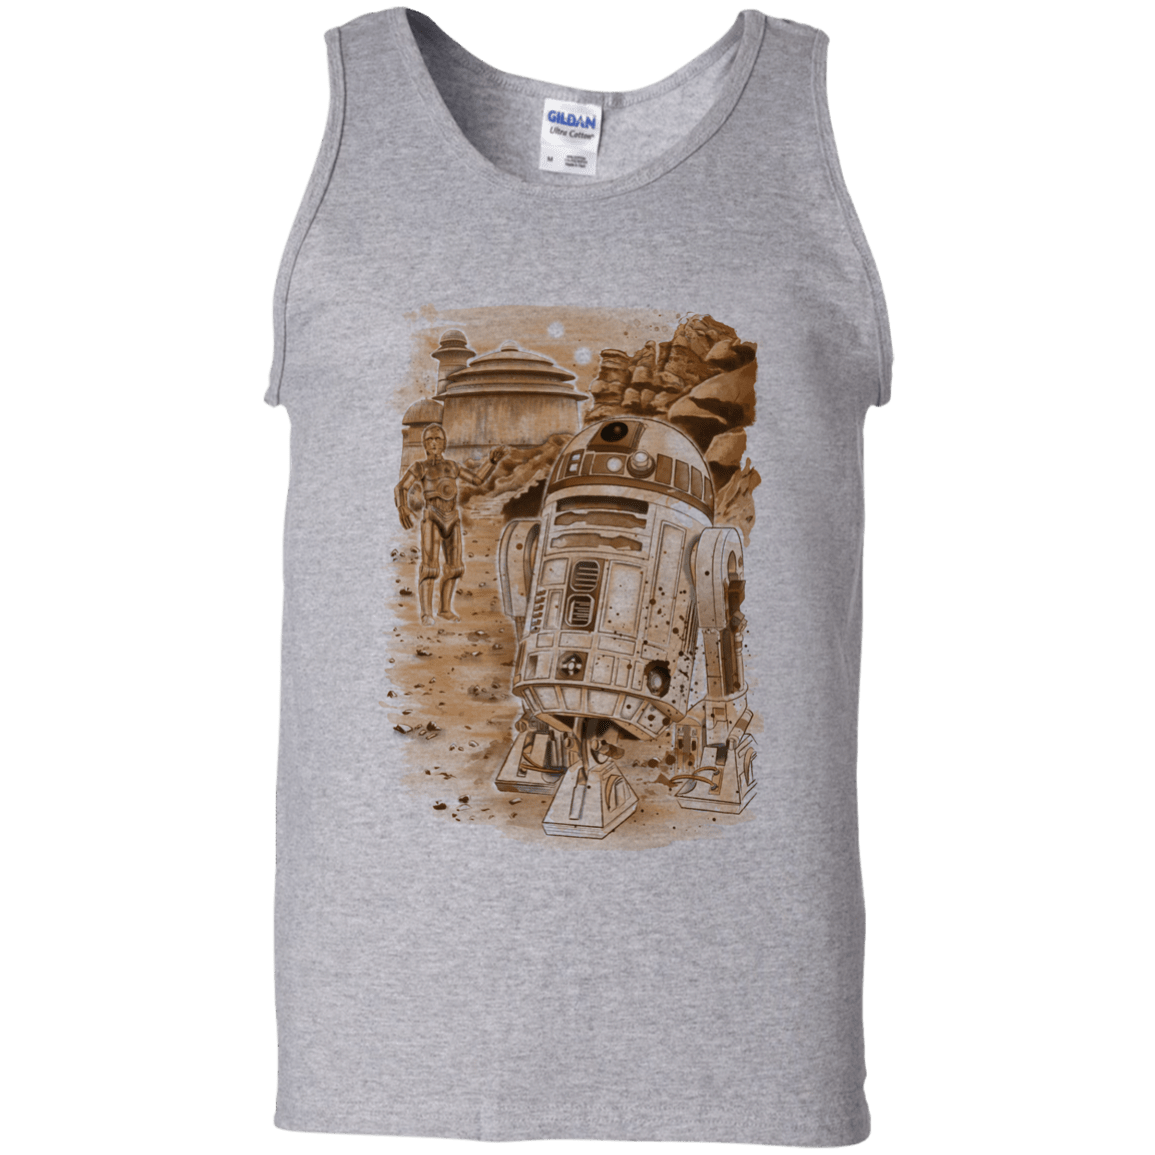 T-Shirts Sport Grey / S Mission to jabba palace Men's Tank Top